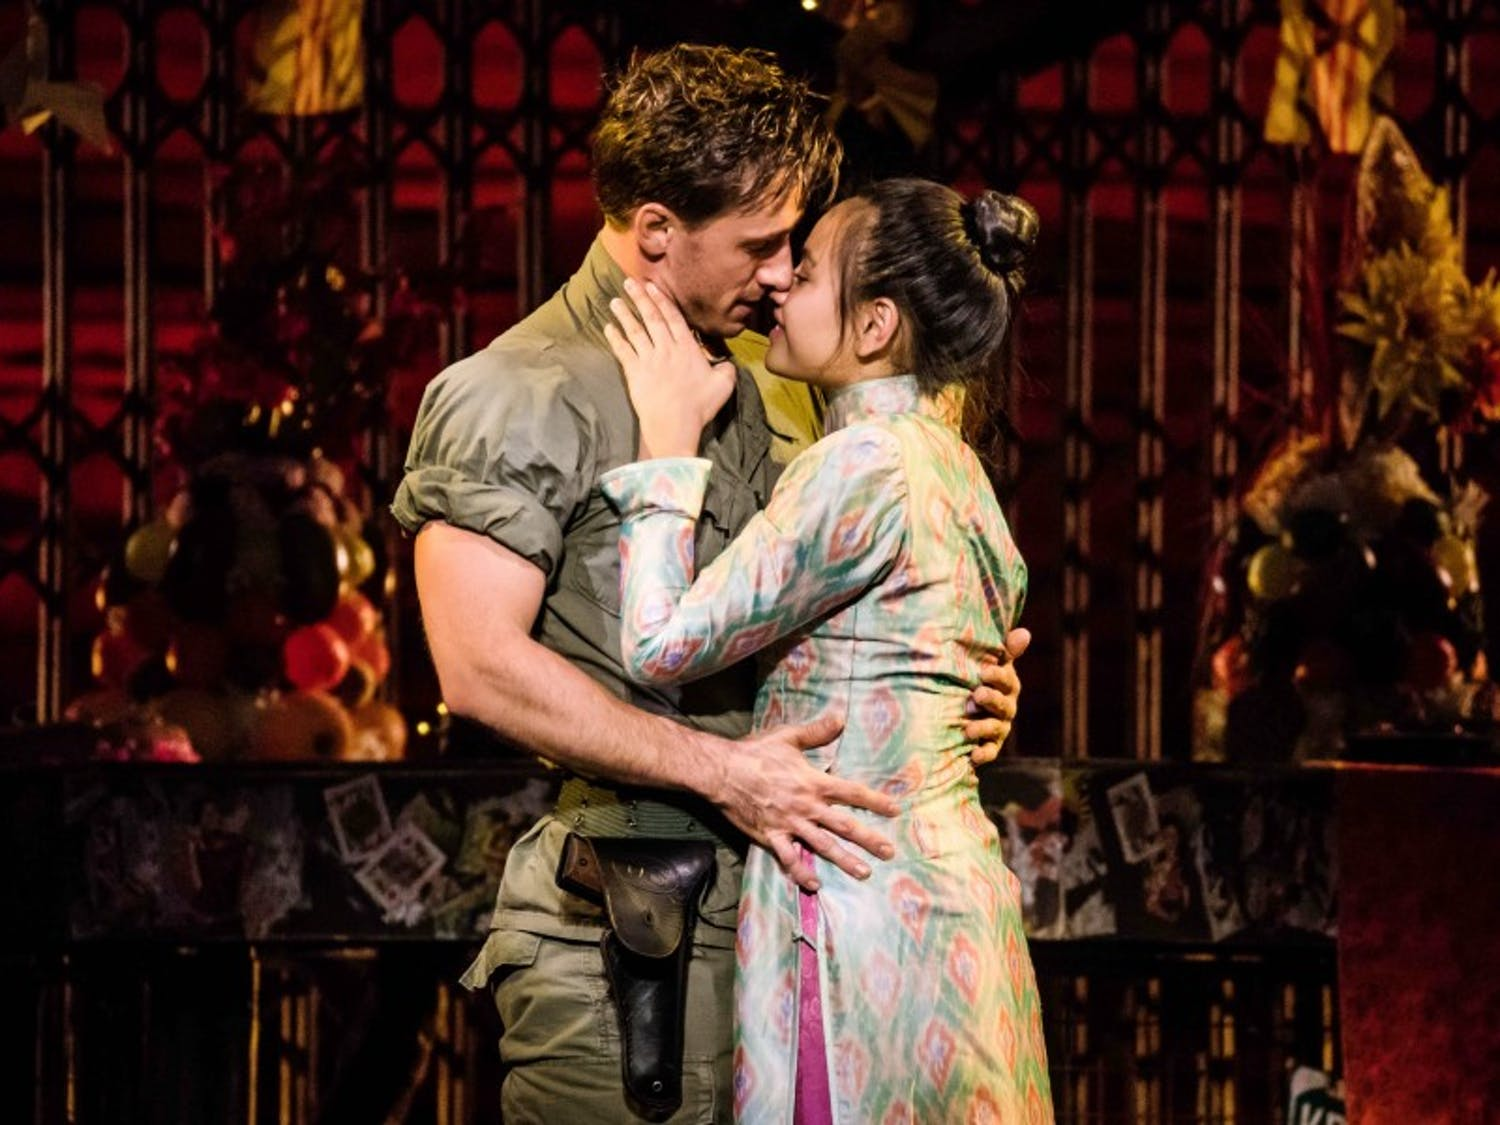 'Miss Saigon' played at the Overture Center in Madison, garnering backlash and protest from the Asian American campus community.